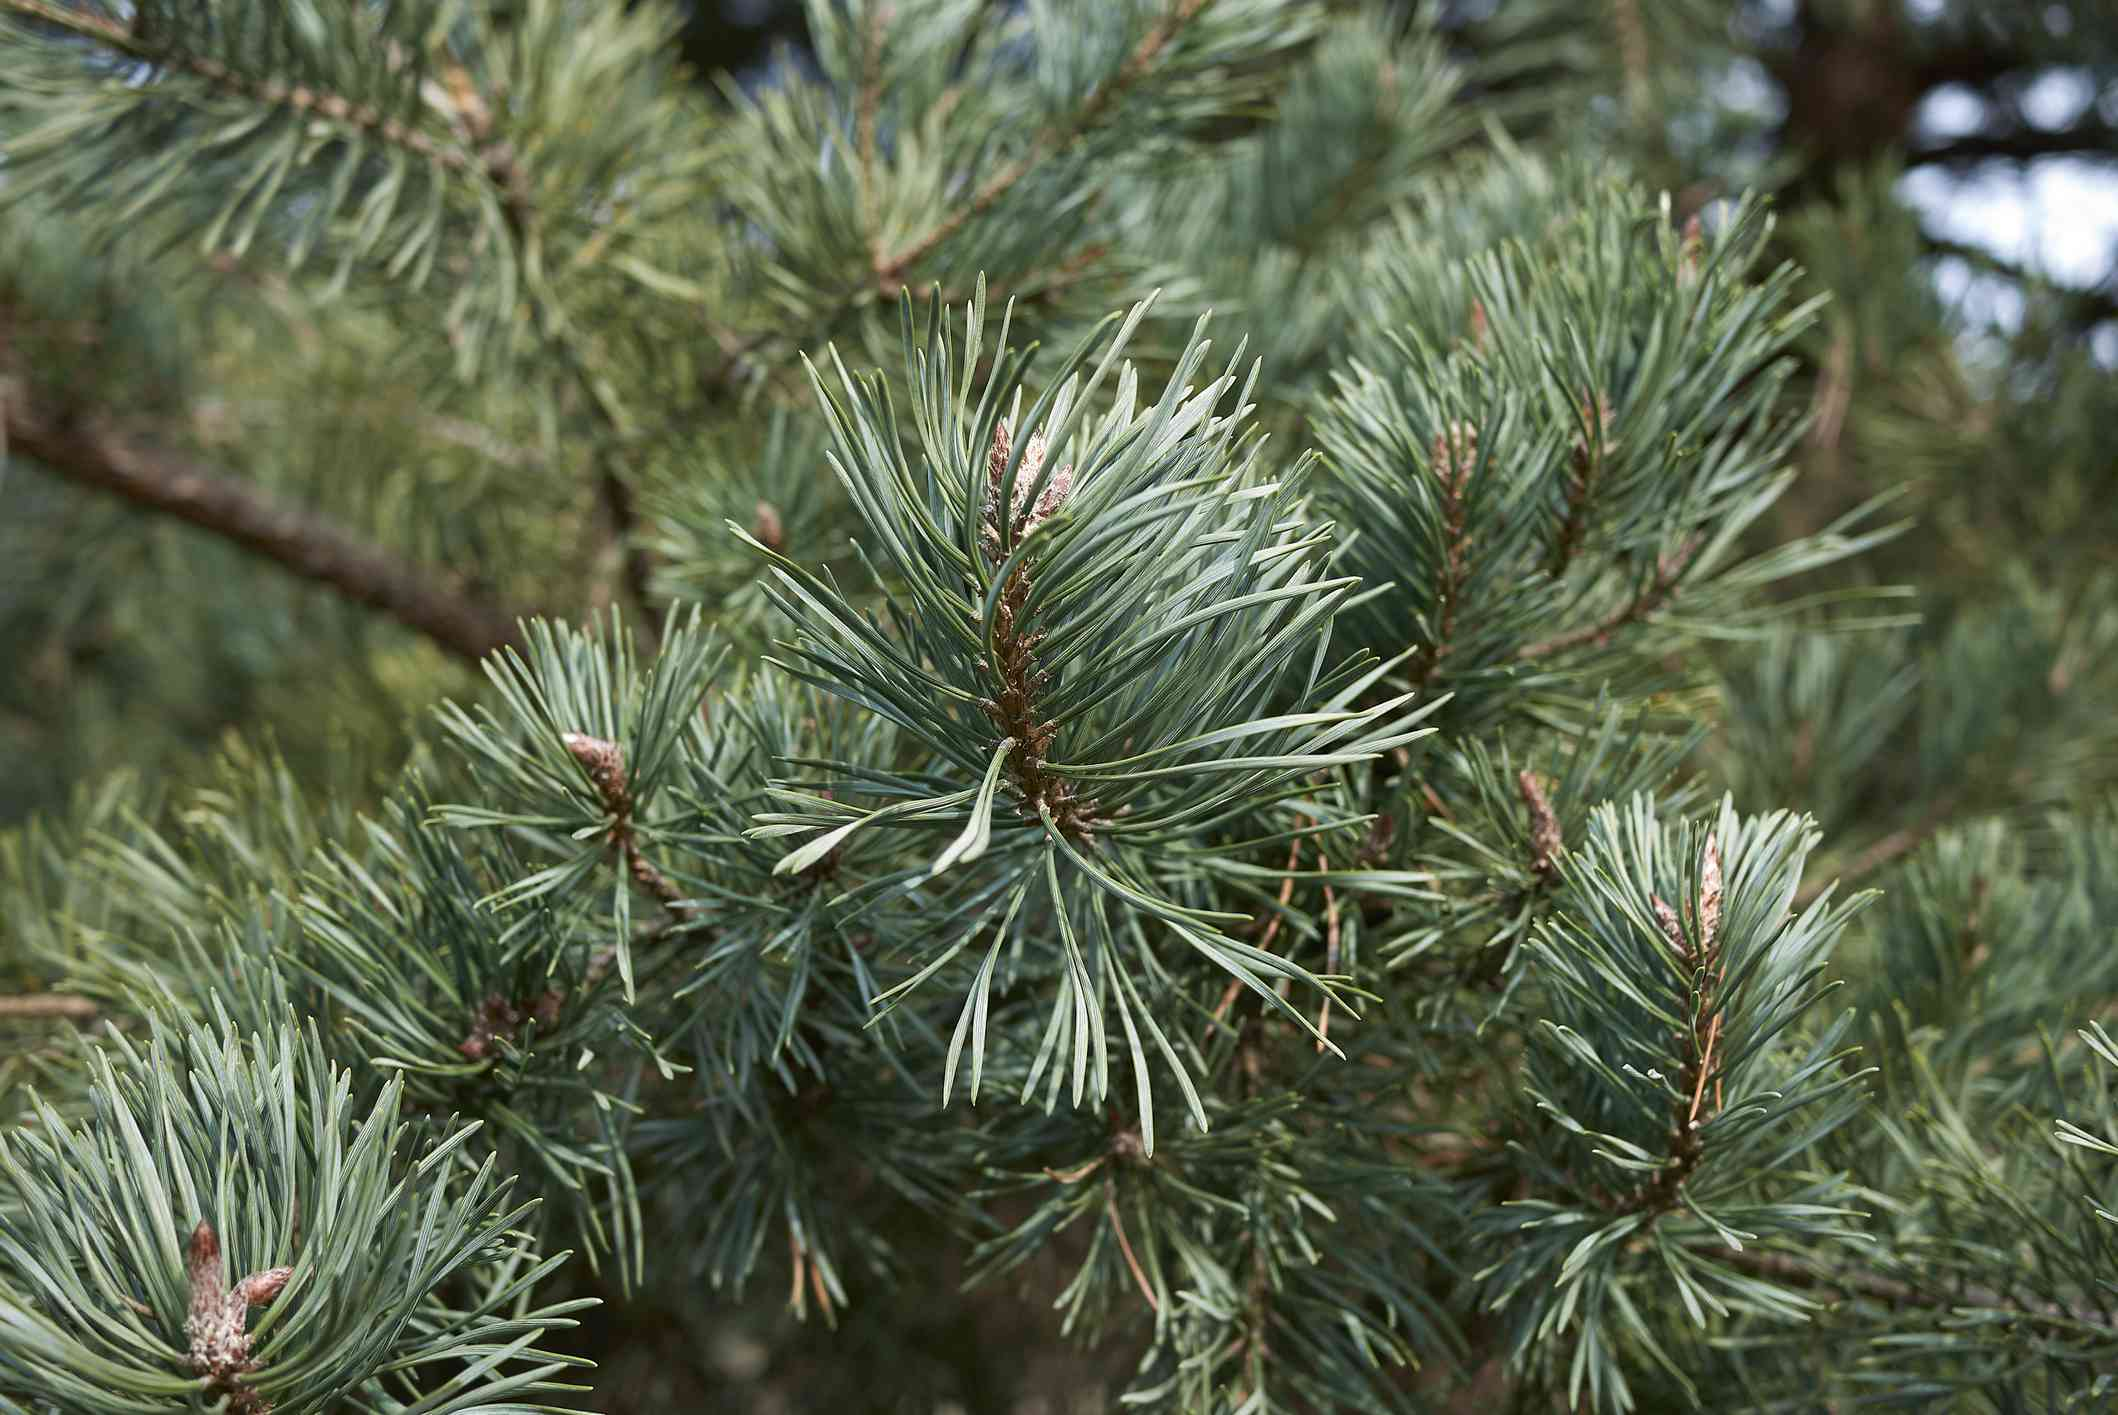 closeup of scotch pine tree branches and needles